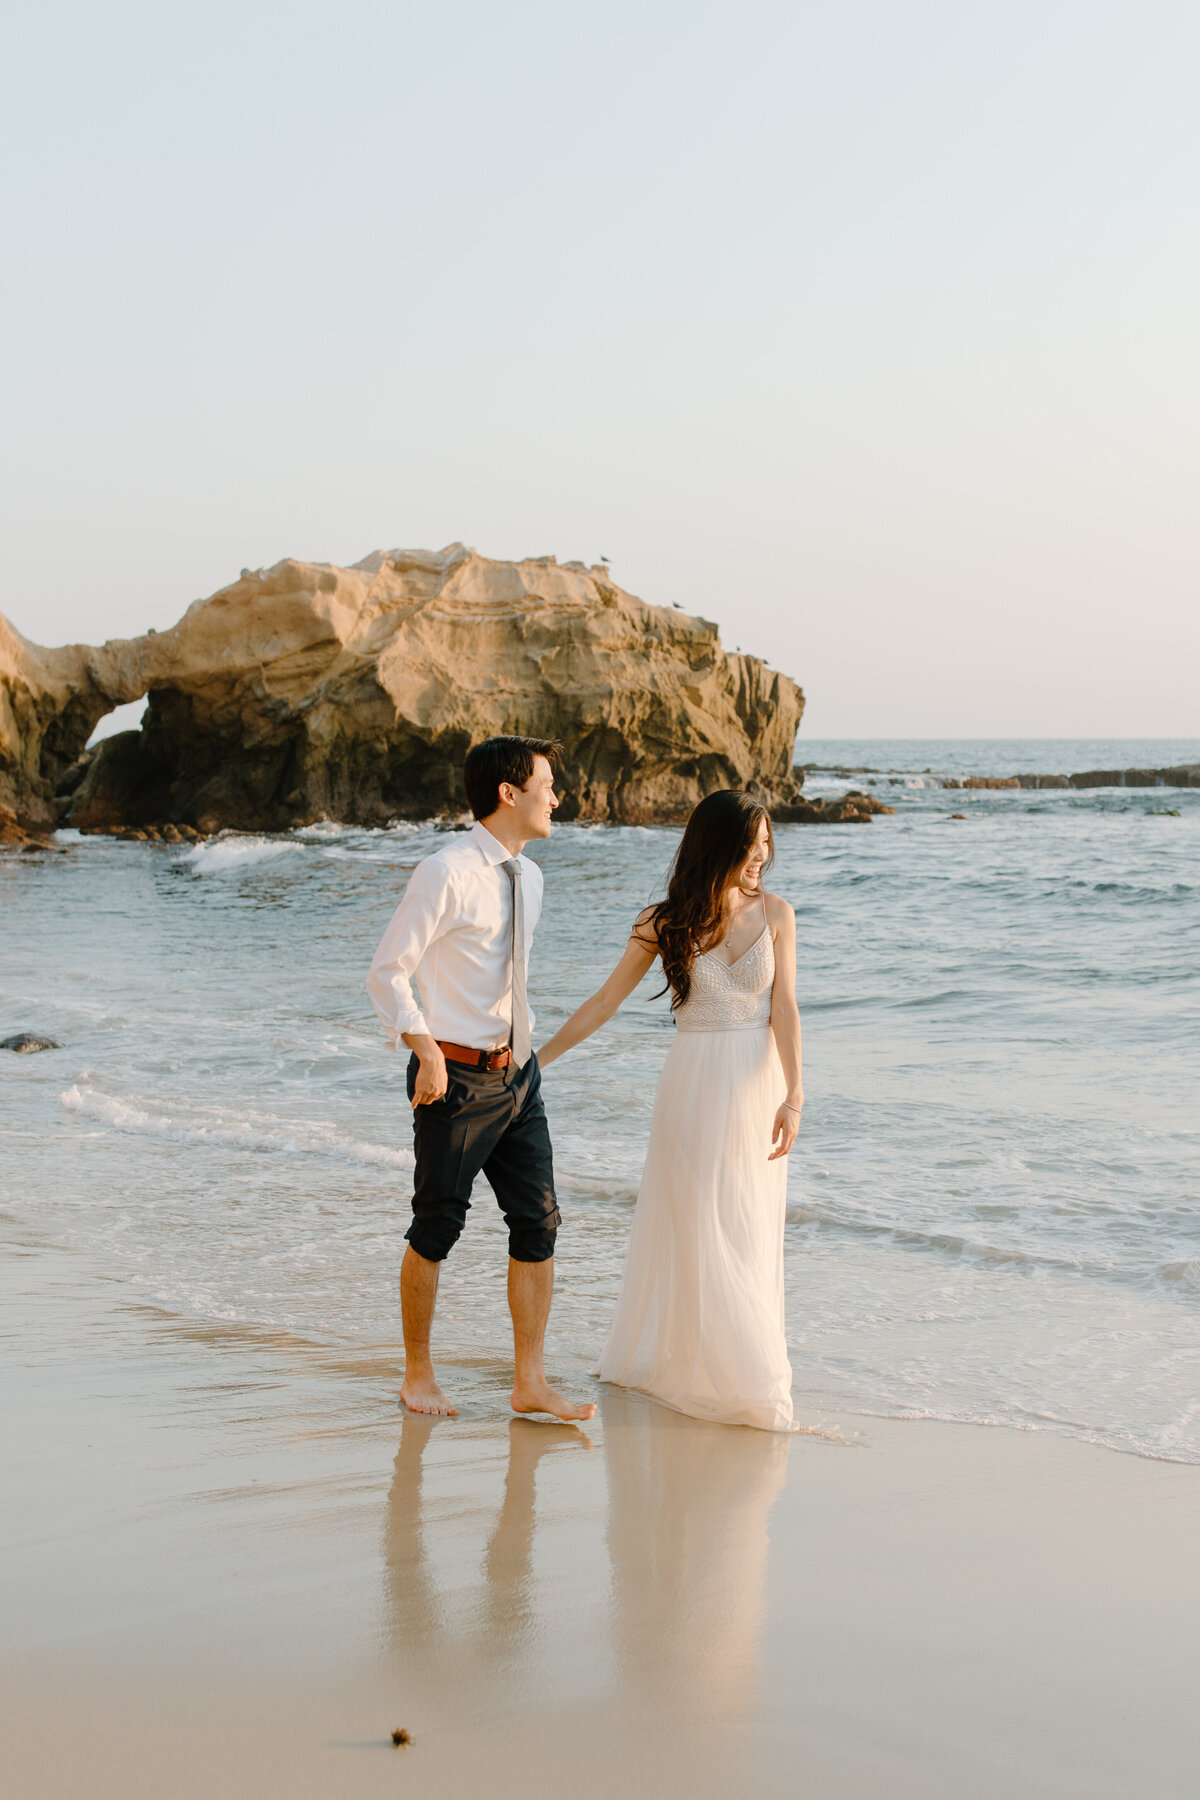 Alli & Jesse - Laguna Beach - Tess Laureen Photography @tesslaureen - 410